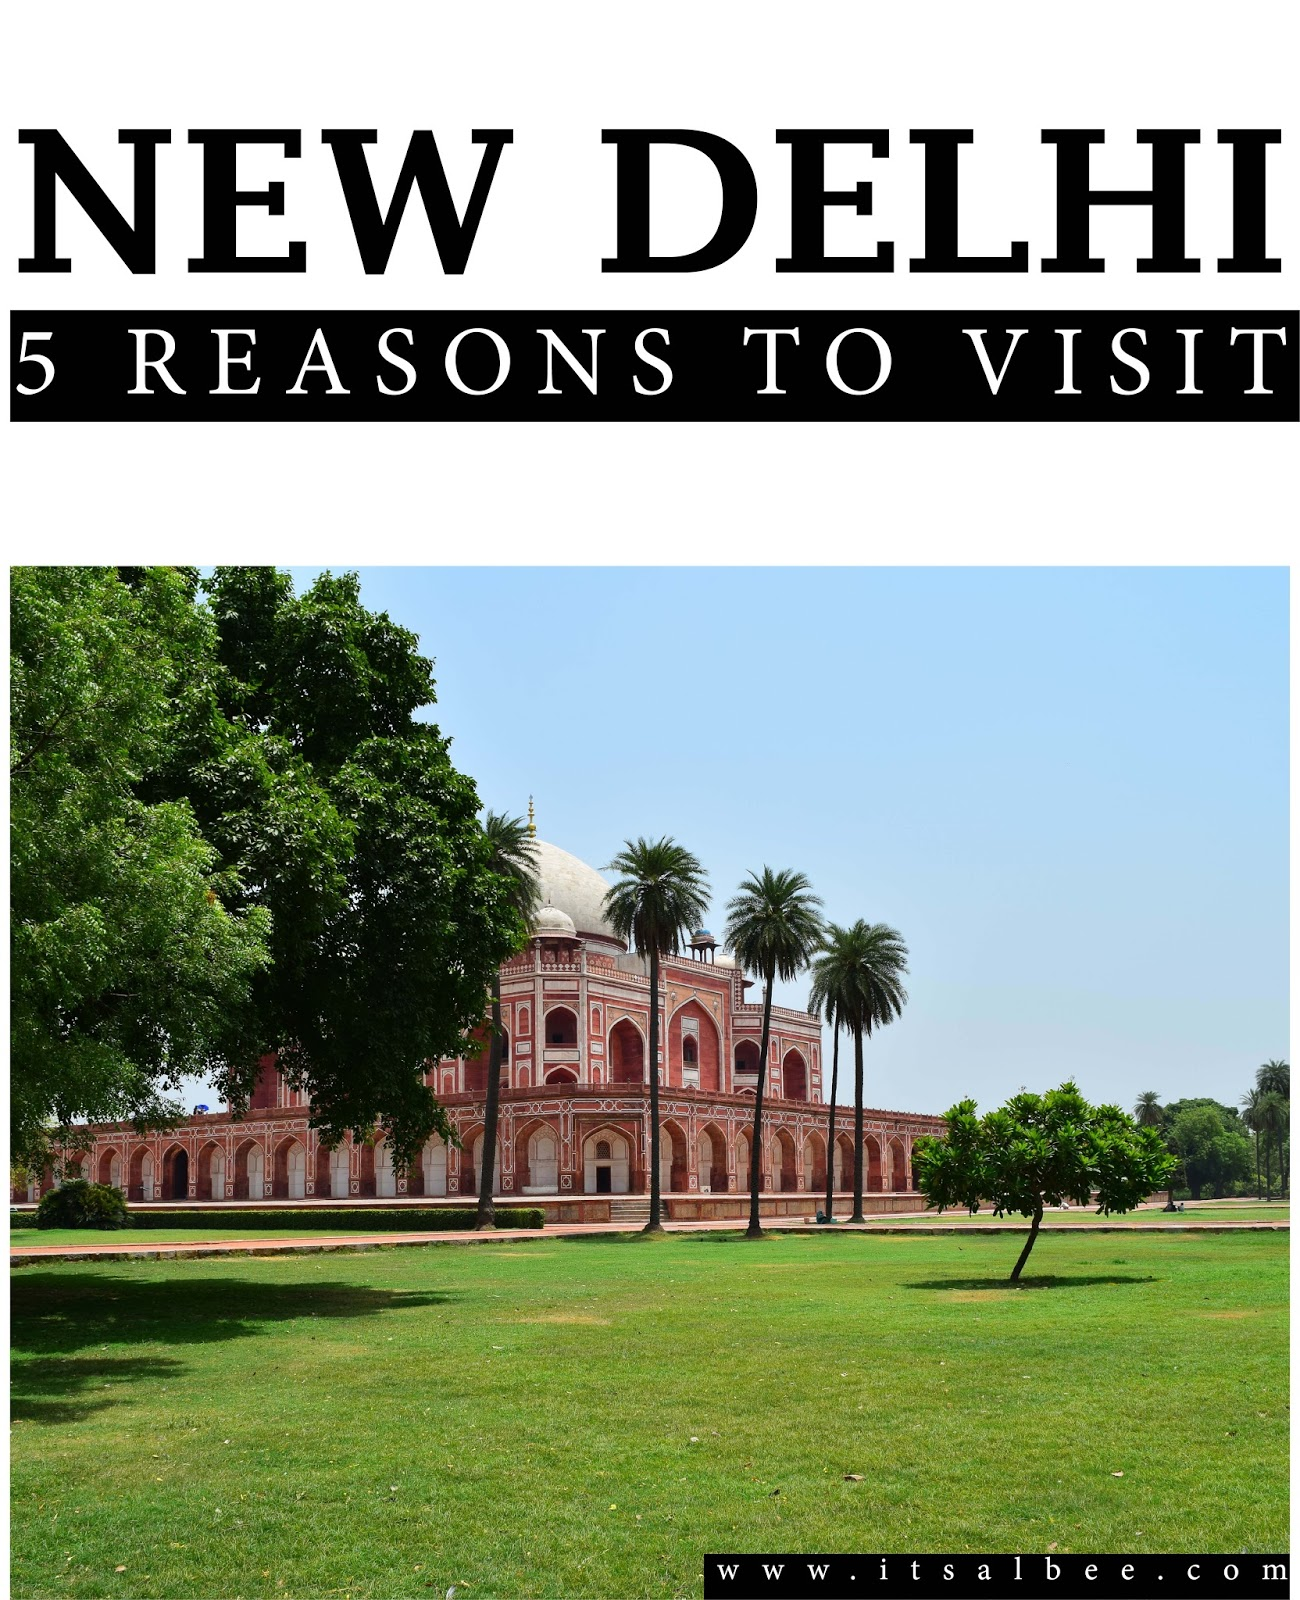 Guide To New Delhi | 5 Reasons You Will Love New Delhi #asia #india #traveltips #reasonstovisit #packing #adventure